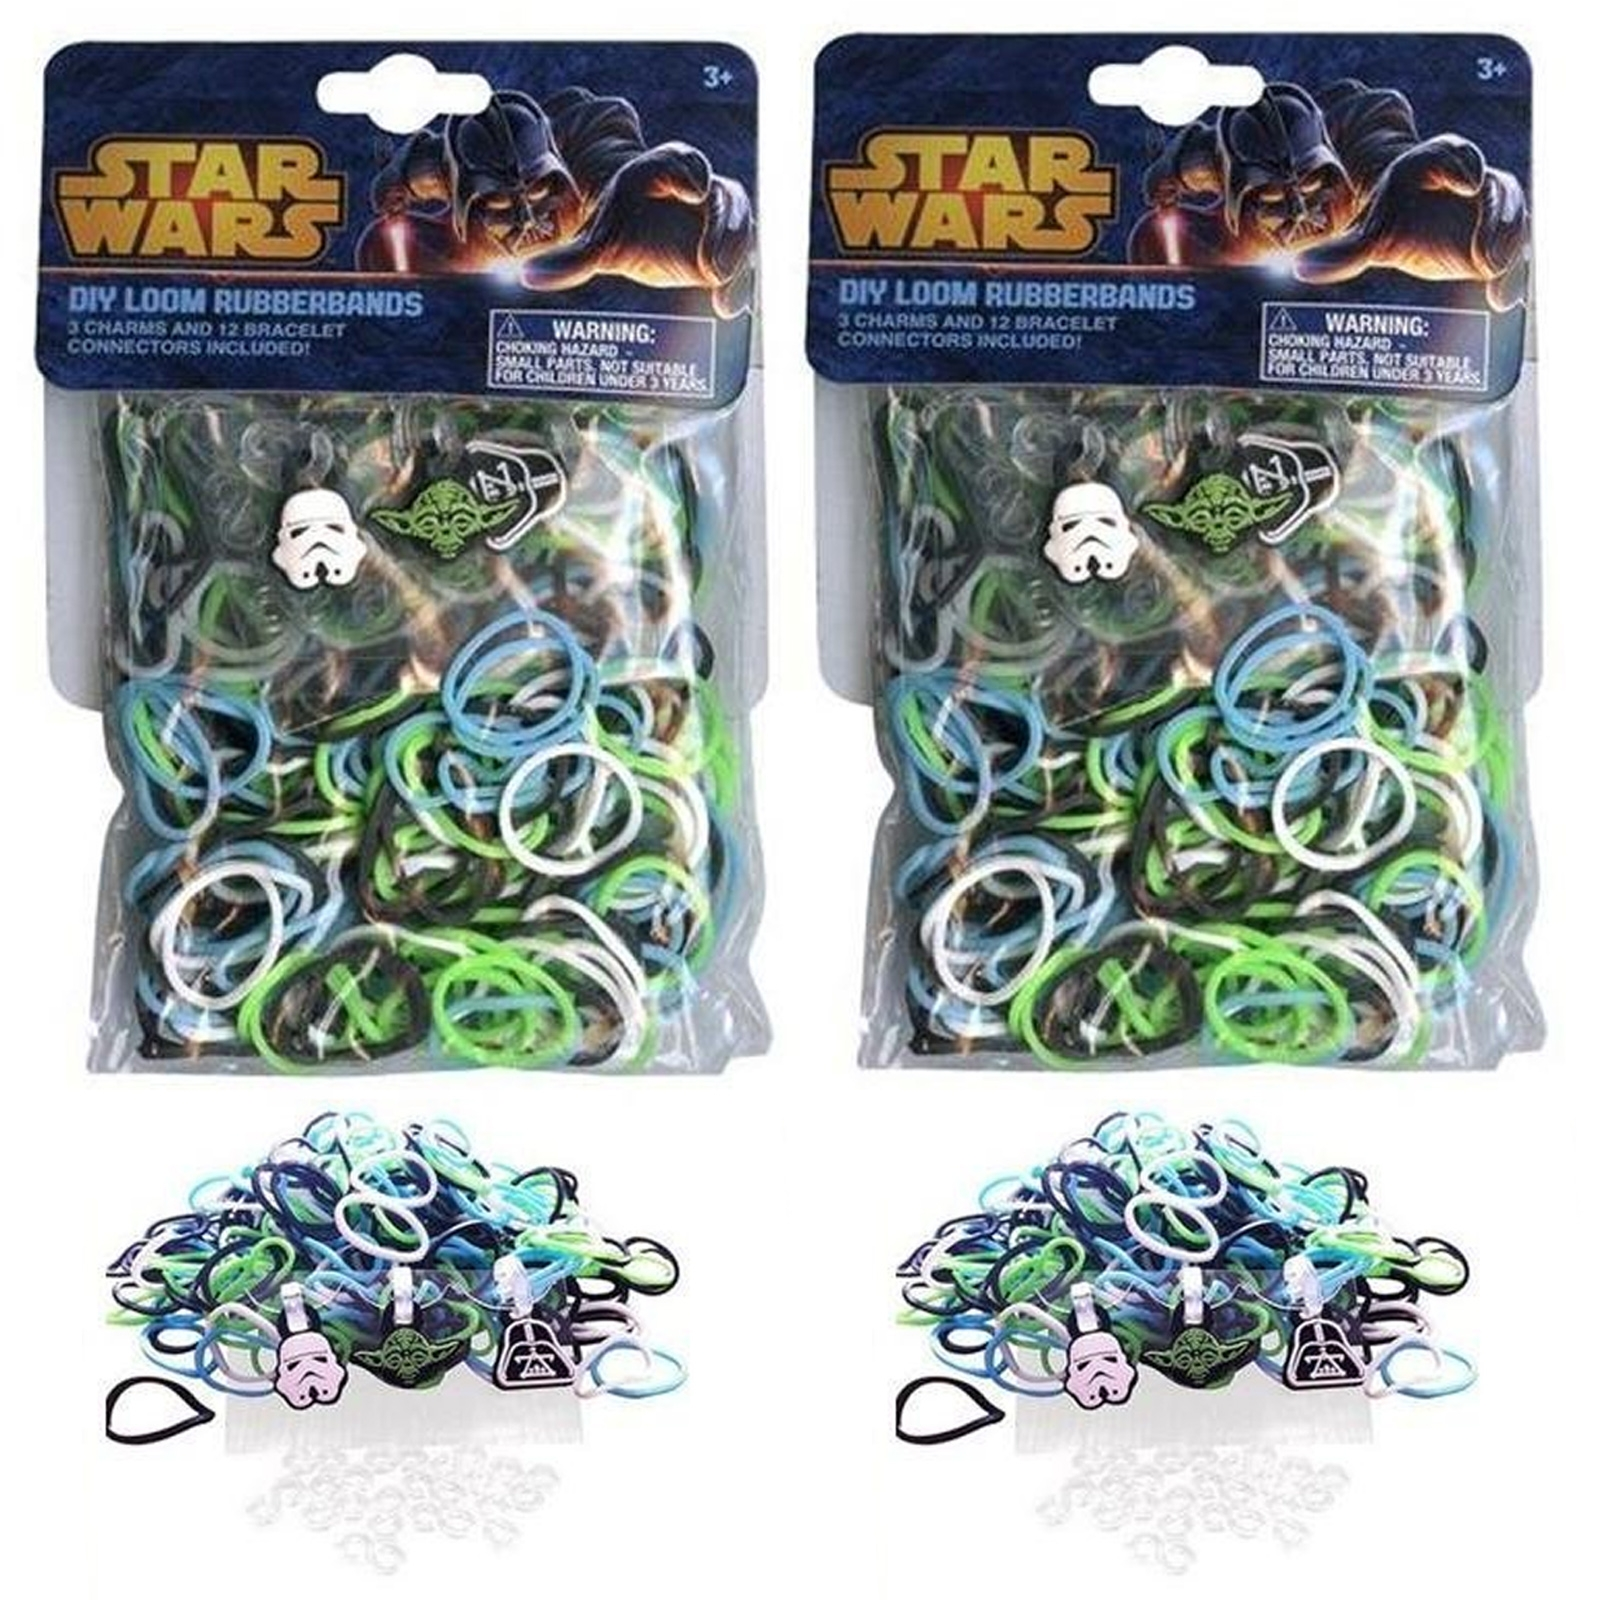 Star Wars Rubber Band Looms Character Charms 300 Piece DIY 2 Pack Set for Kids Arts and Crafts